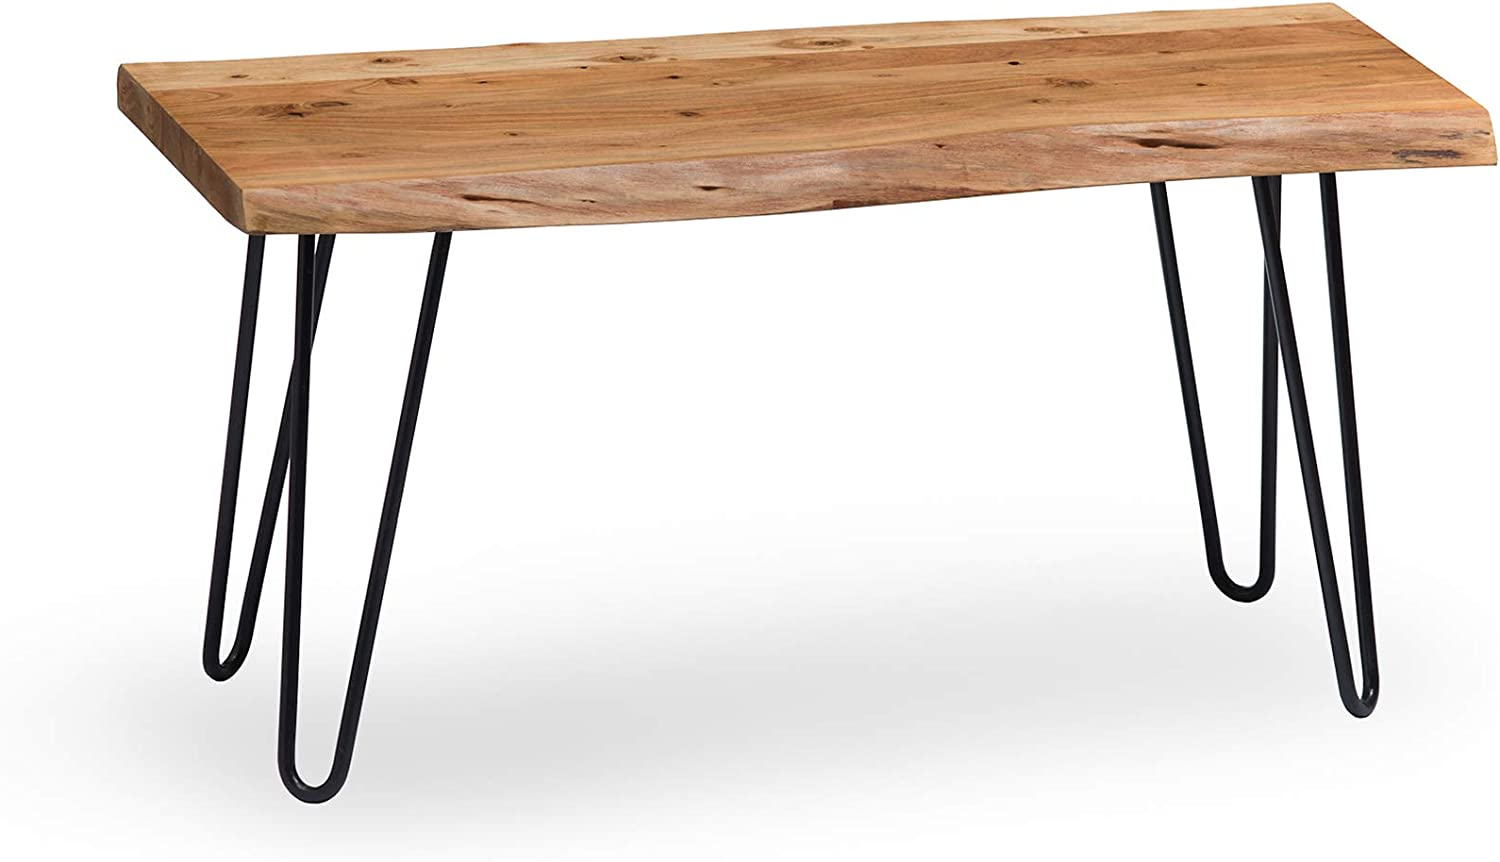 "Alaterre Furniture Hairpin Natural Live Edge Wood with Metal 36"" Bench"